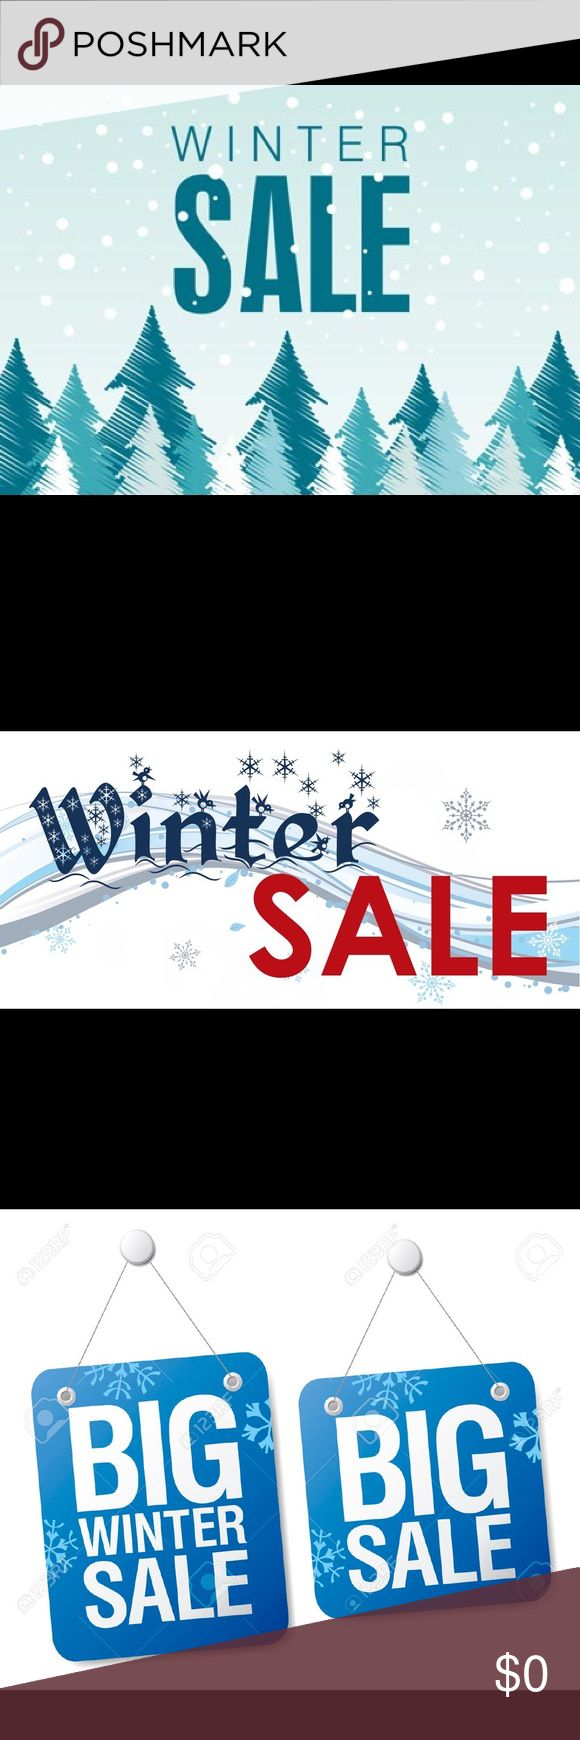 WINTER SALE!!!! MAKE A REASONABLE OFFER!!! ❄️❄️❄️ Winter Sale!!! Make a reasonable offer on winter items marked w/ a snowflake!!! ❄️❄️❄️❄️❄️❄️❄️❄️❄️❄️❄️❄️❄️❄️ Feel free to ask any questions! 🤗🤗🤗🤗🤗🤗🤗🤗 Other